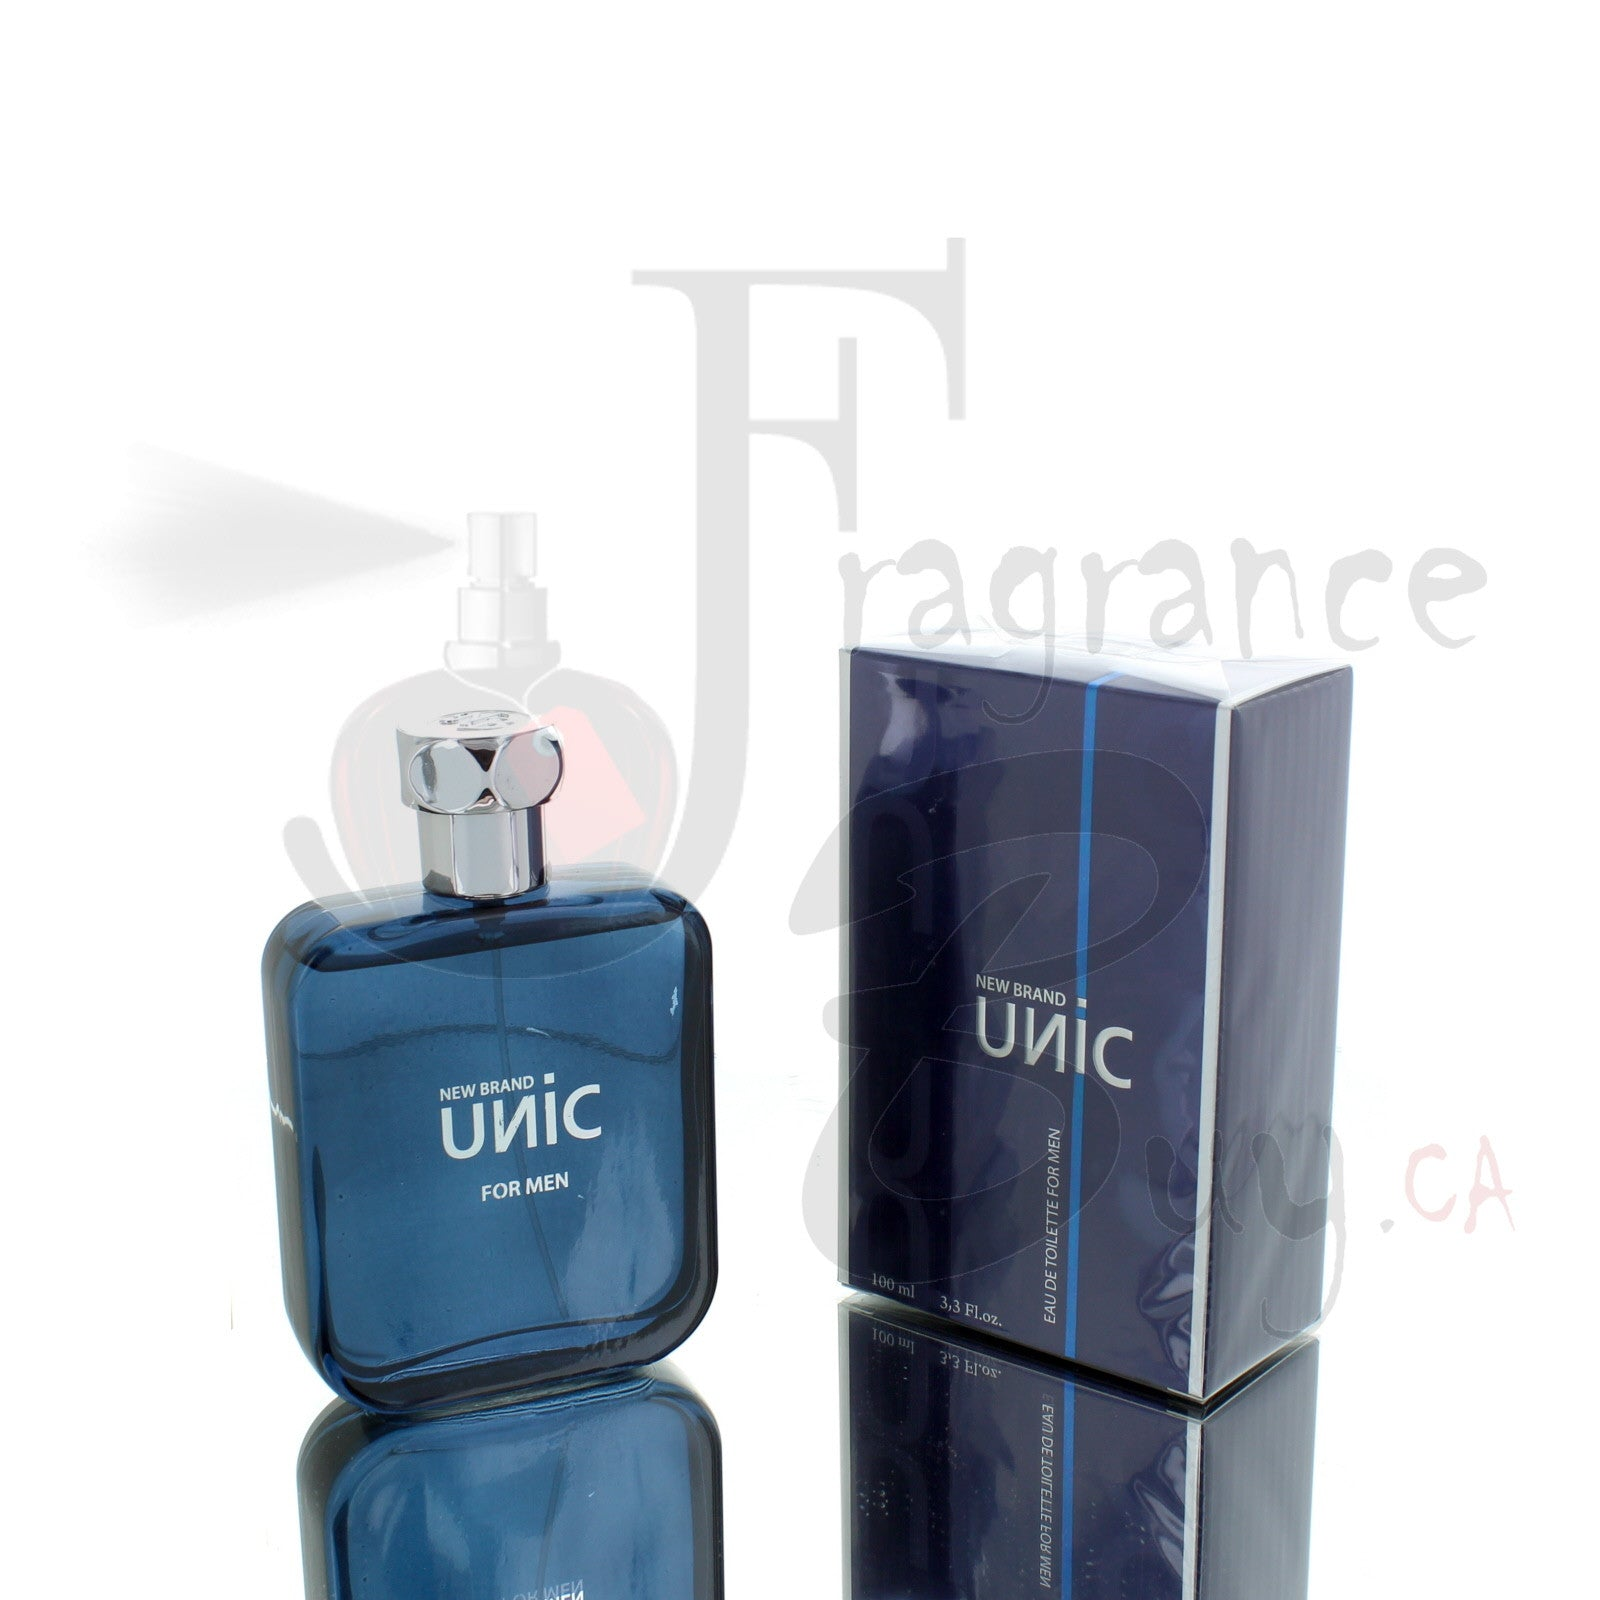 Unic (The Bleu Twist) By New Brand For Man